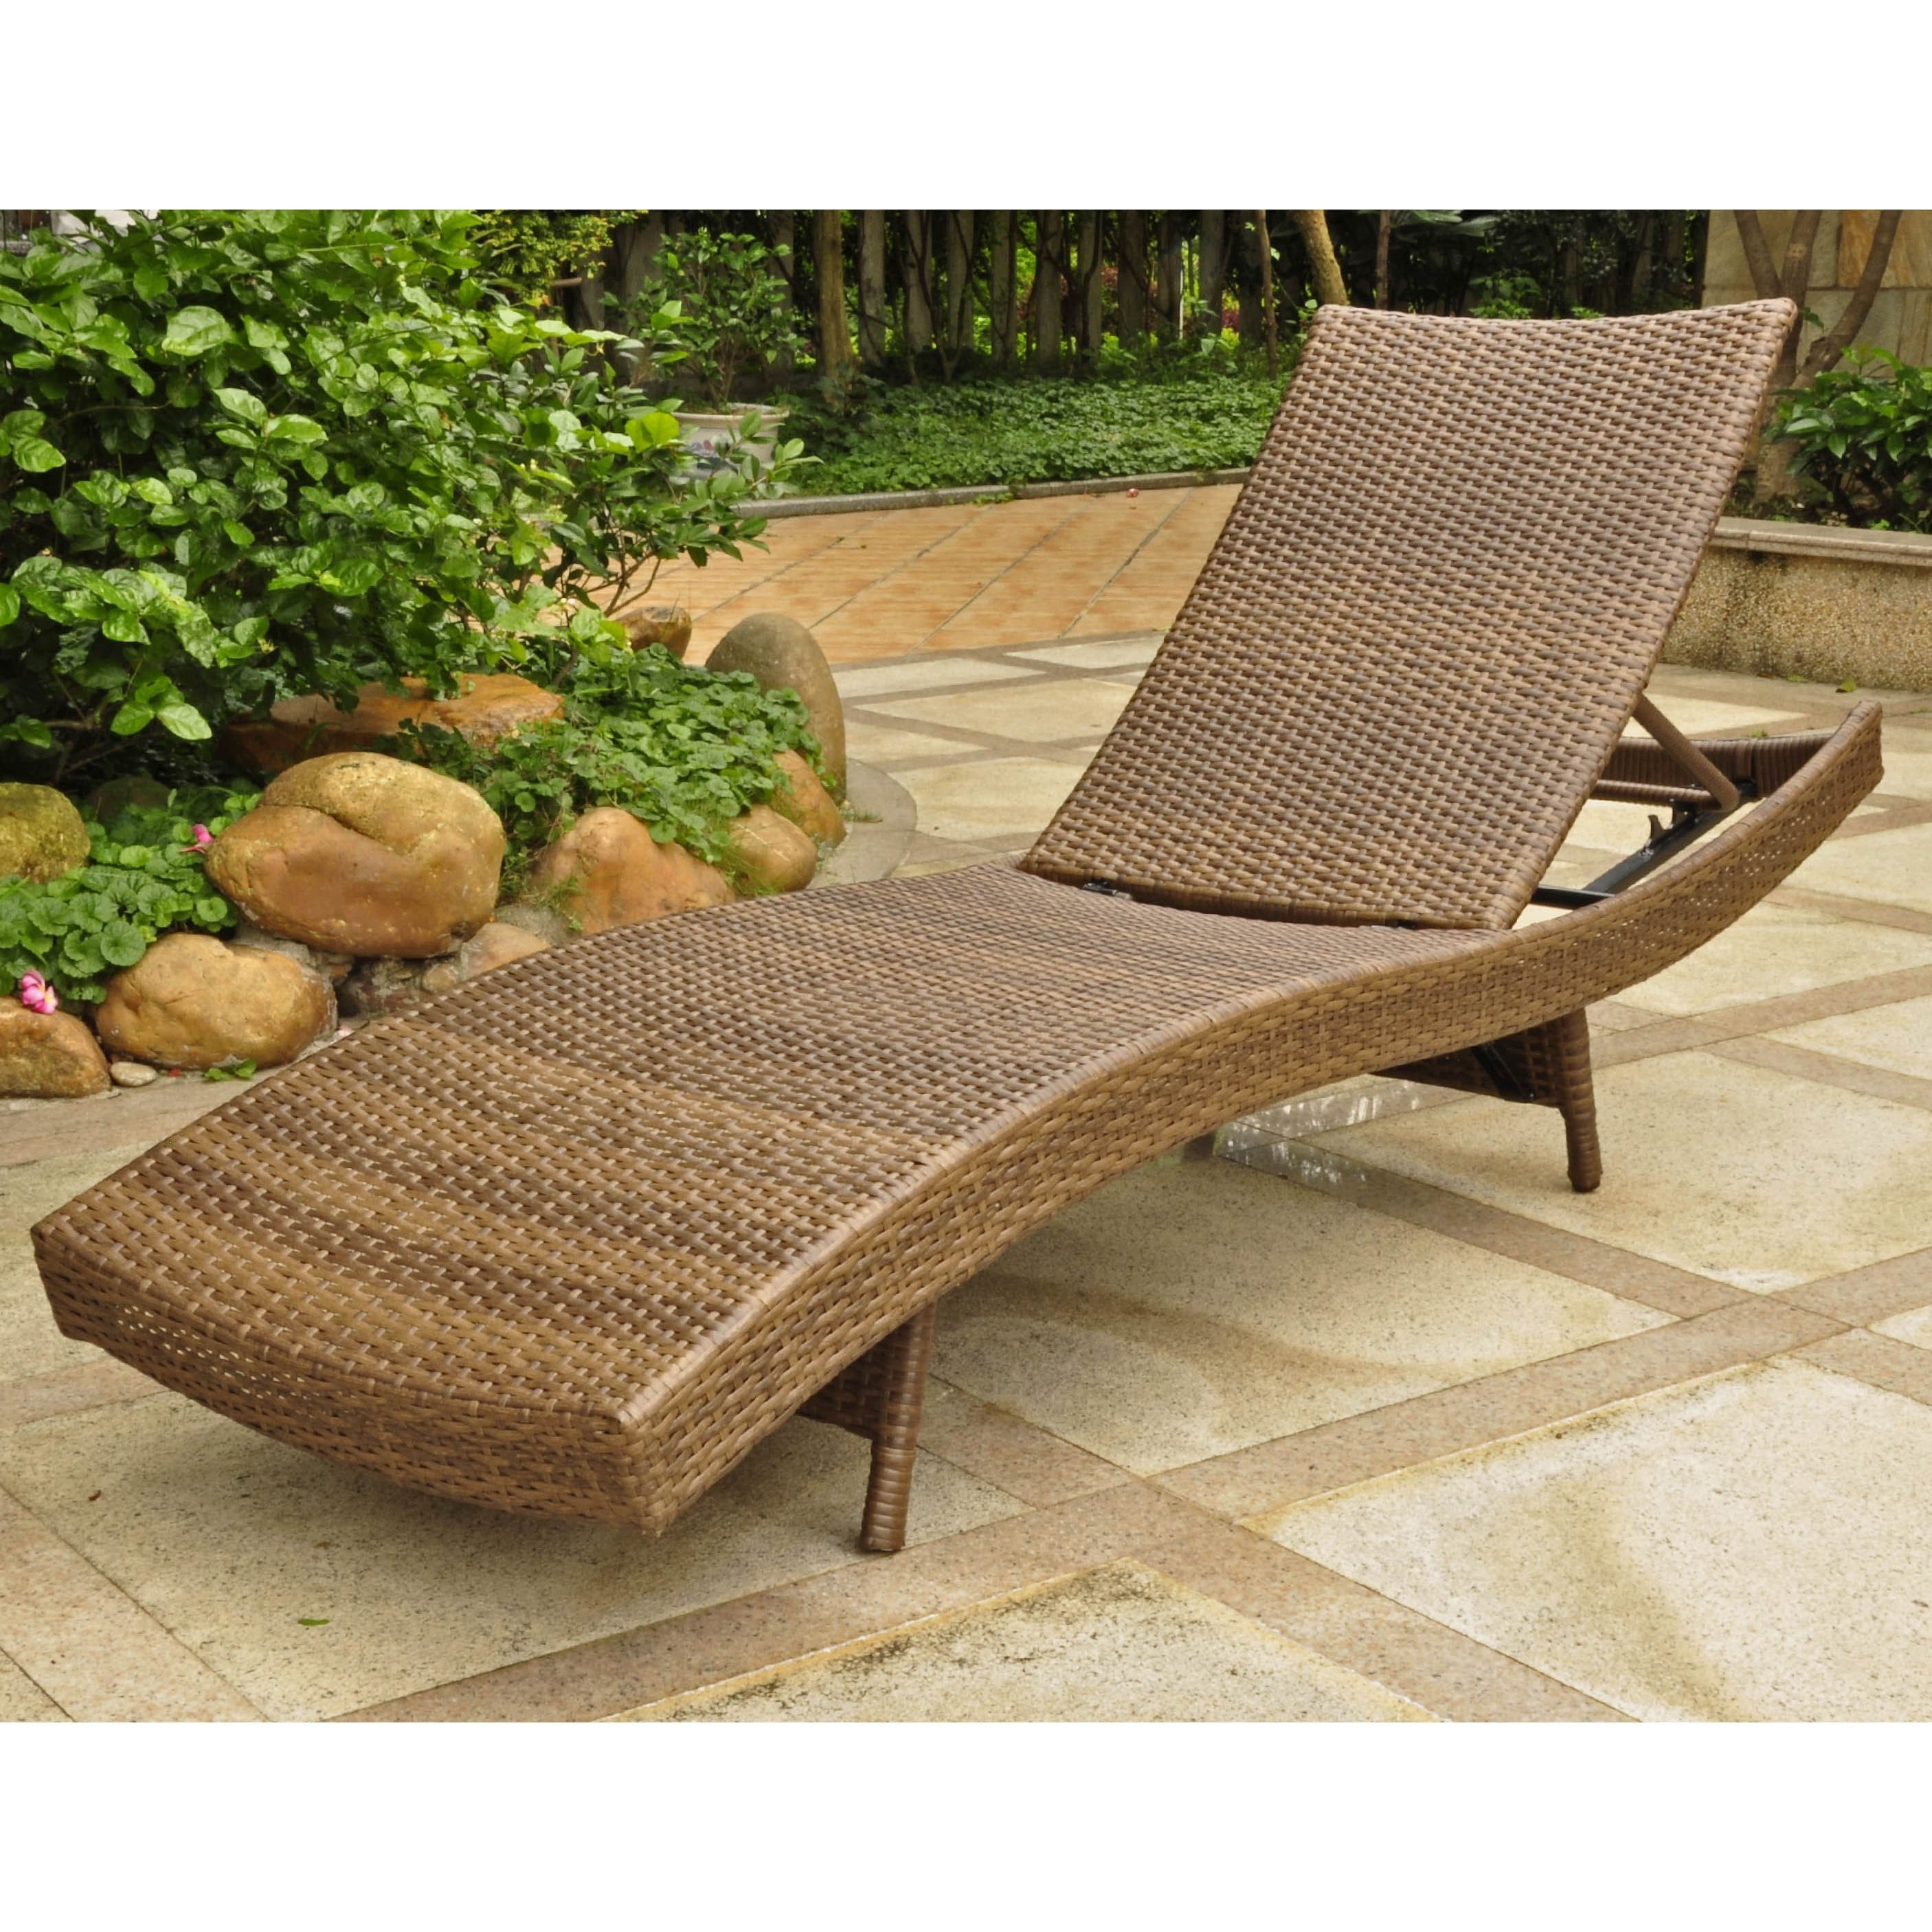 Chaise Barcelona International Caravan Barcelona Outdoor Resin Wicker Aluminum Multi Position Chaise Lounge